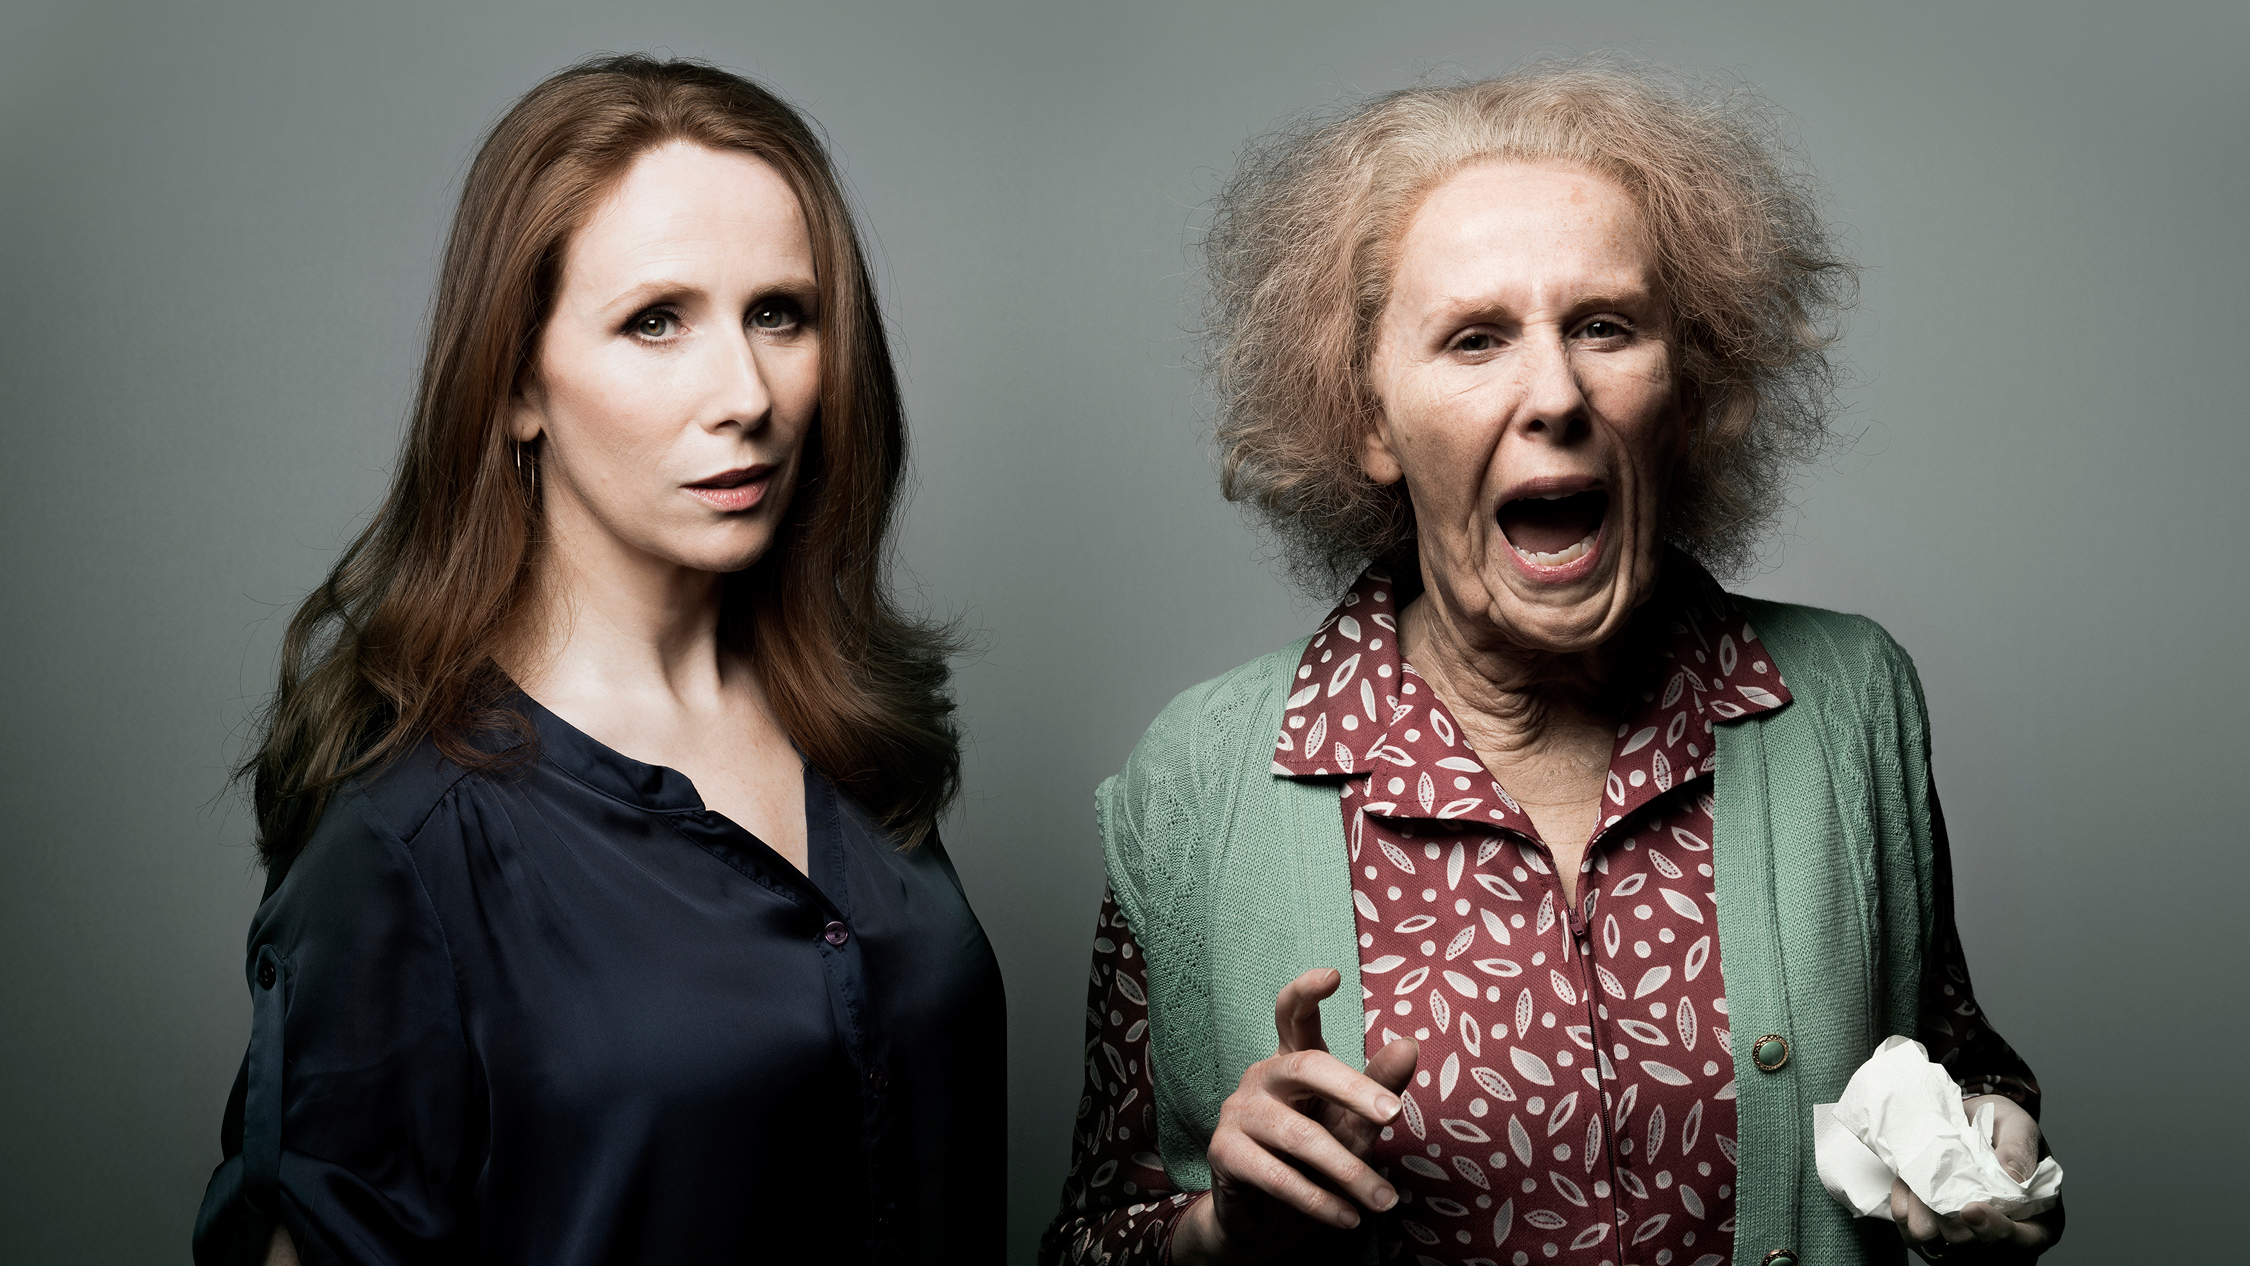 Catherine Tate on her first Australian live shows: 'Does anyone know who I am there?'